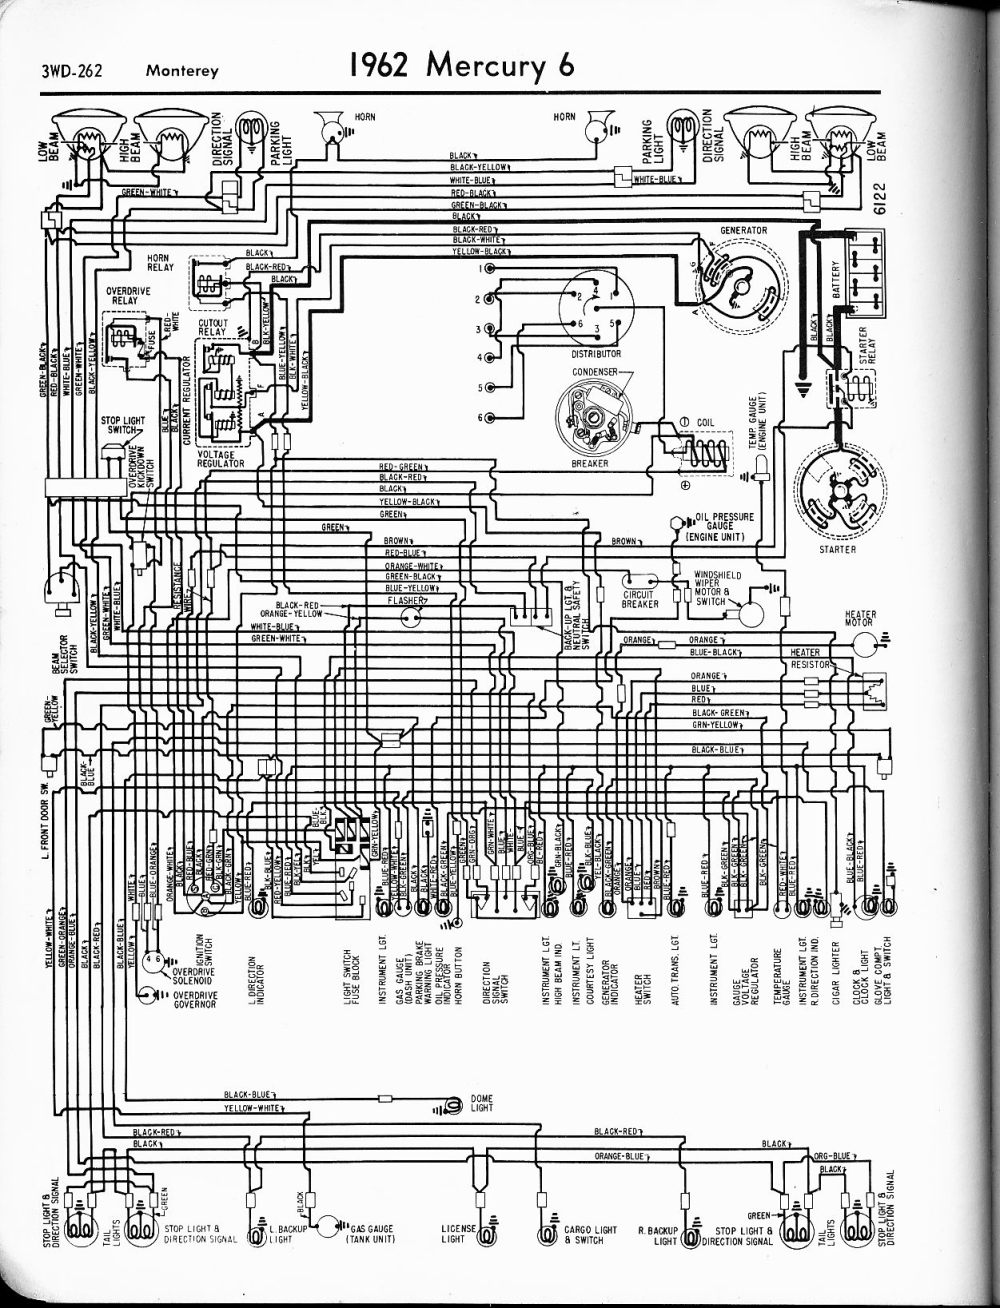 medium resolution of wire diagram for 1966 mercury cougar wiring diagrams konsult 1966 buick riviera 1966 mercury wiring diagram